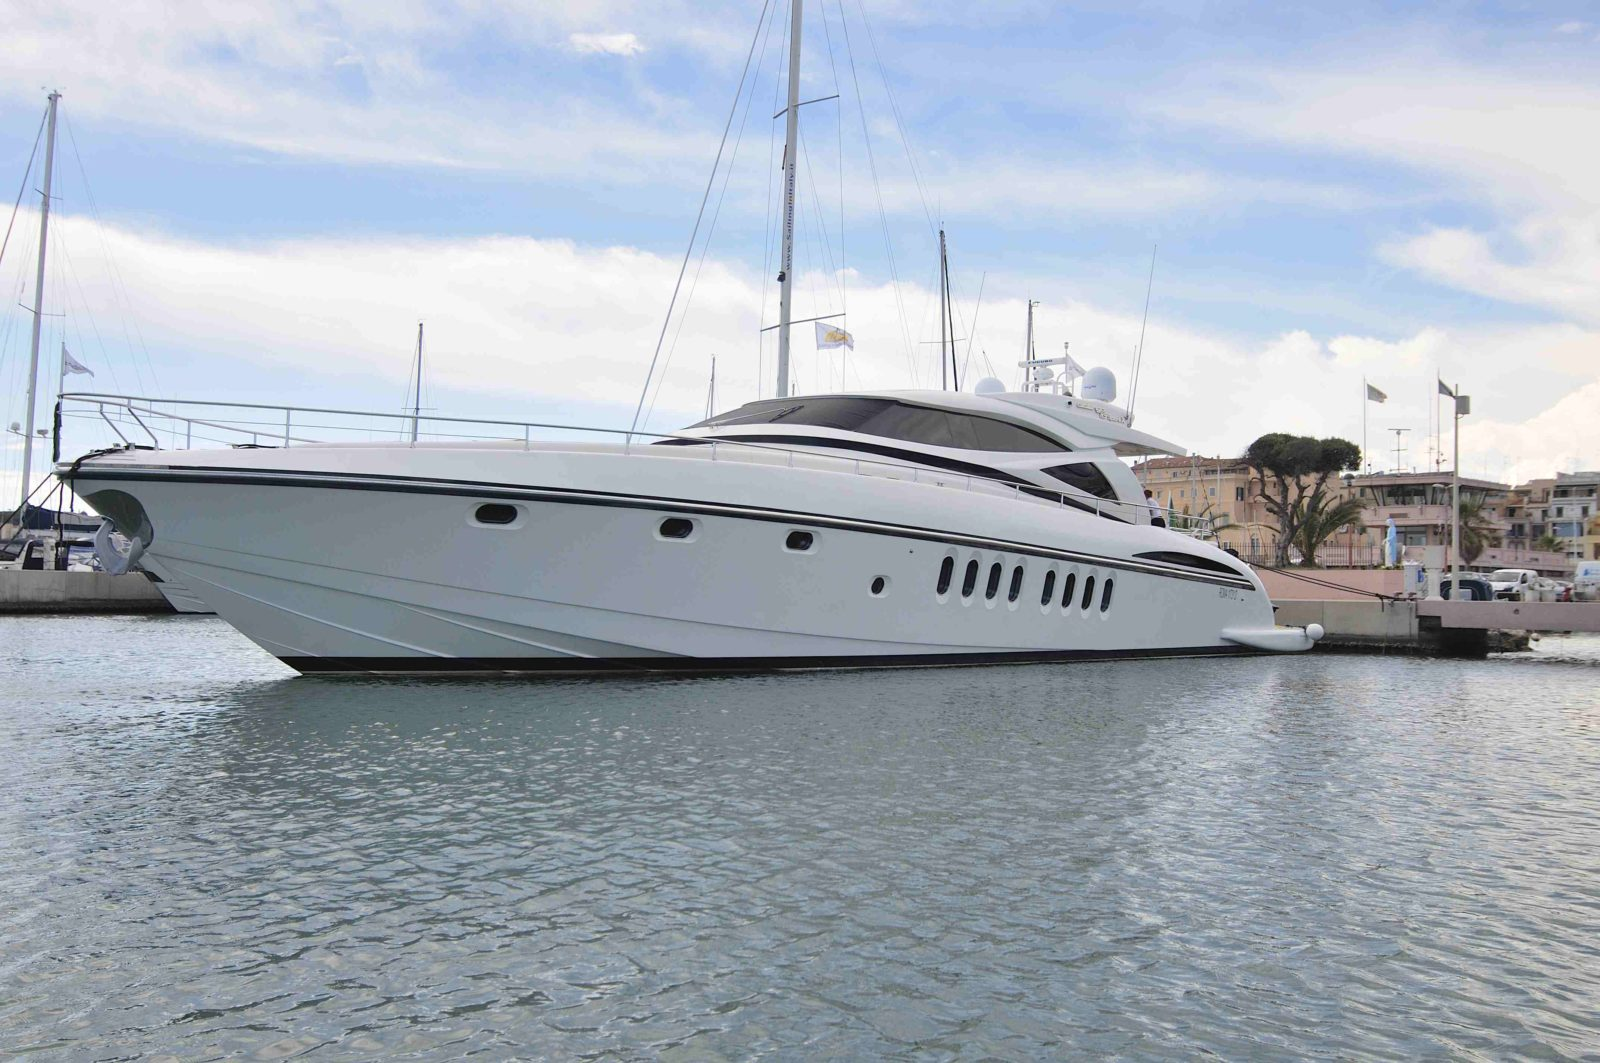 Luxury yacht for Sale or Charter | AMIR III by Alalunga / C.N. Spertini